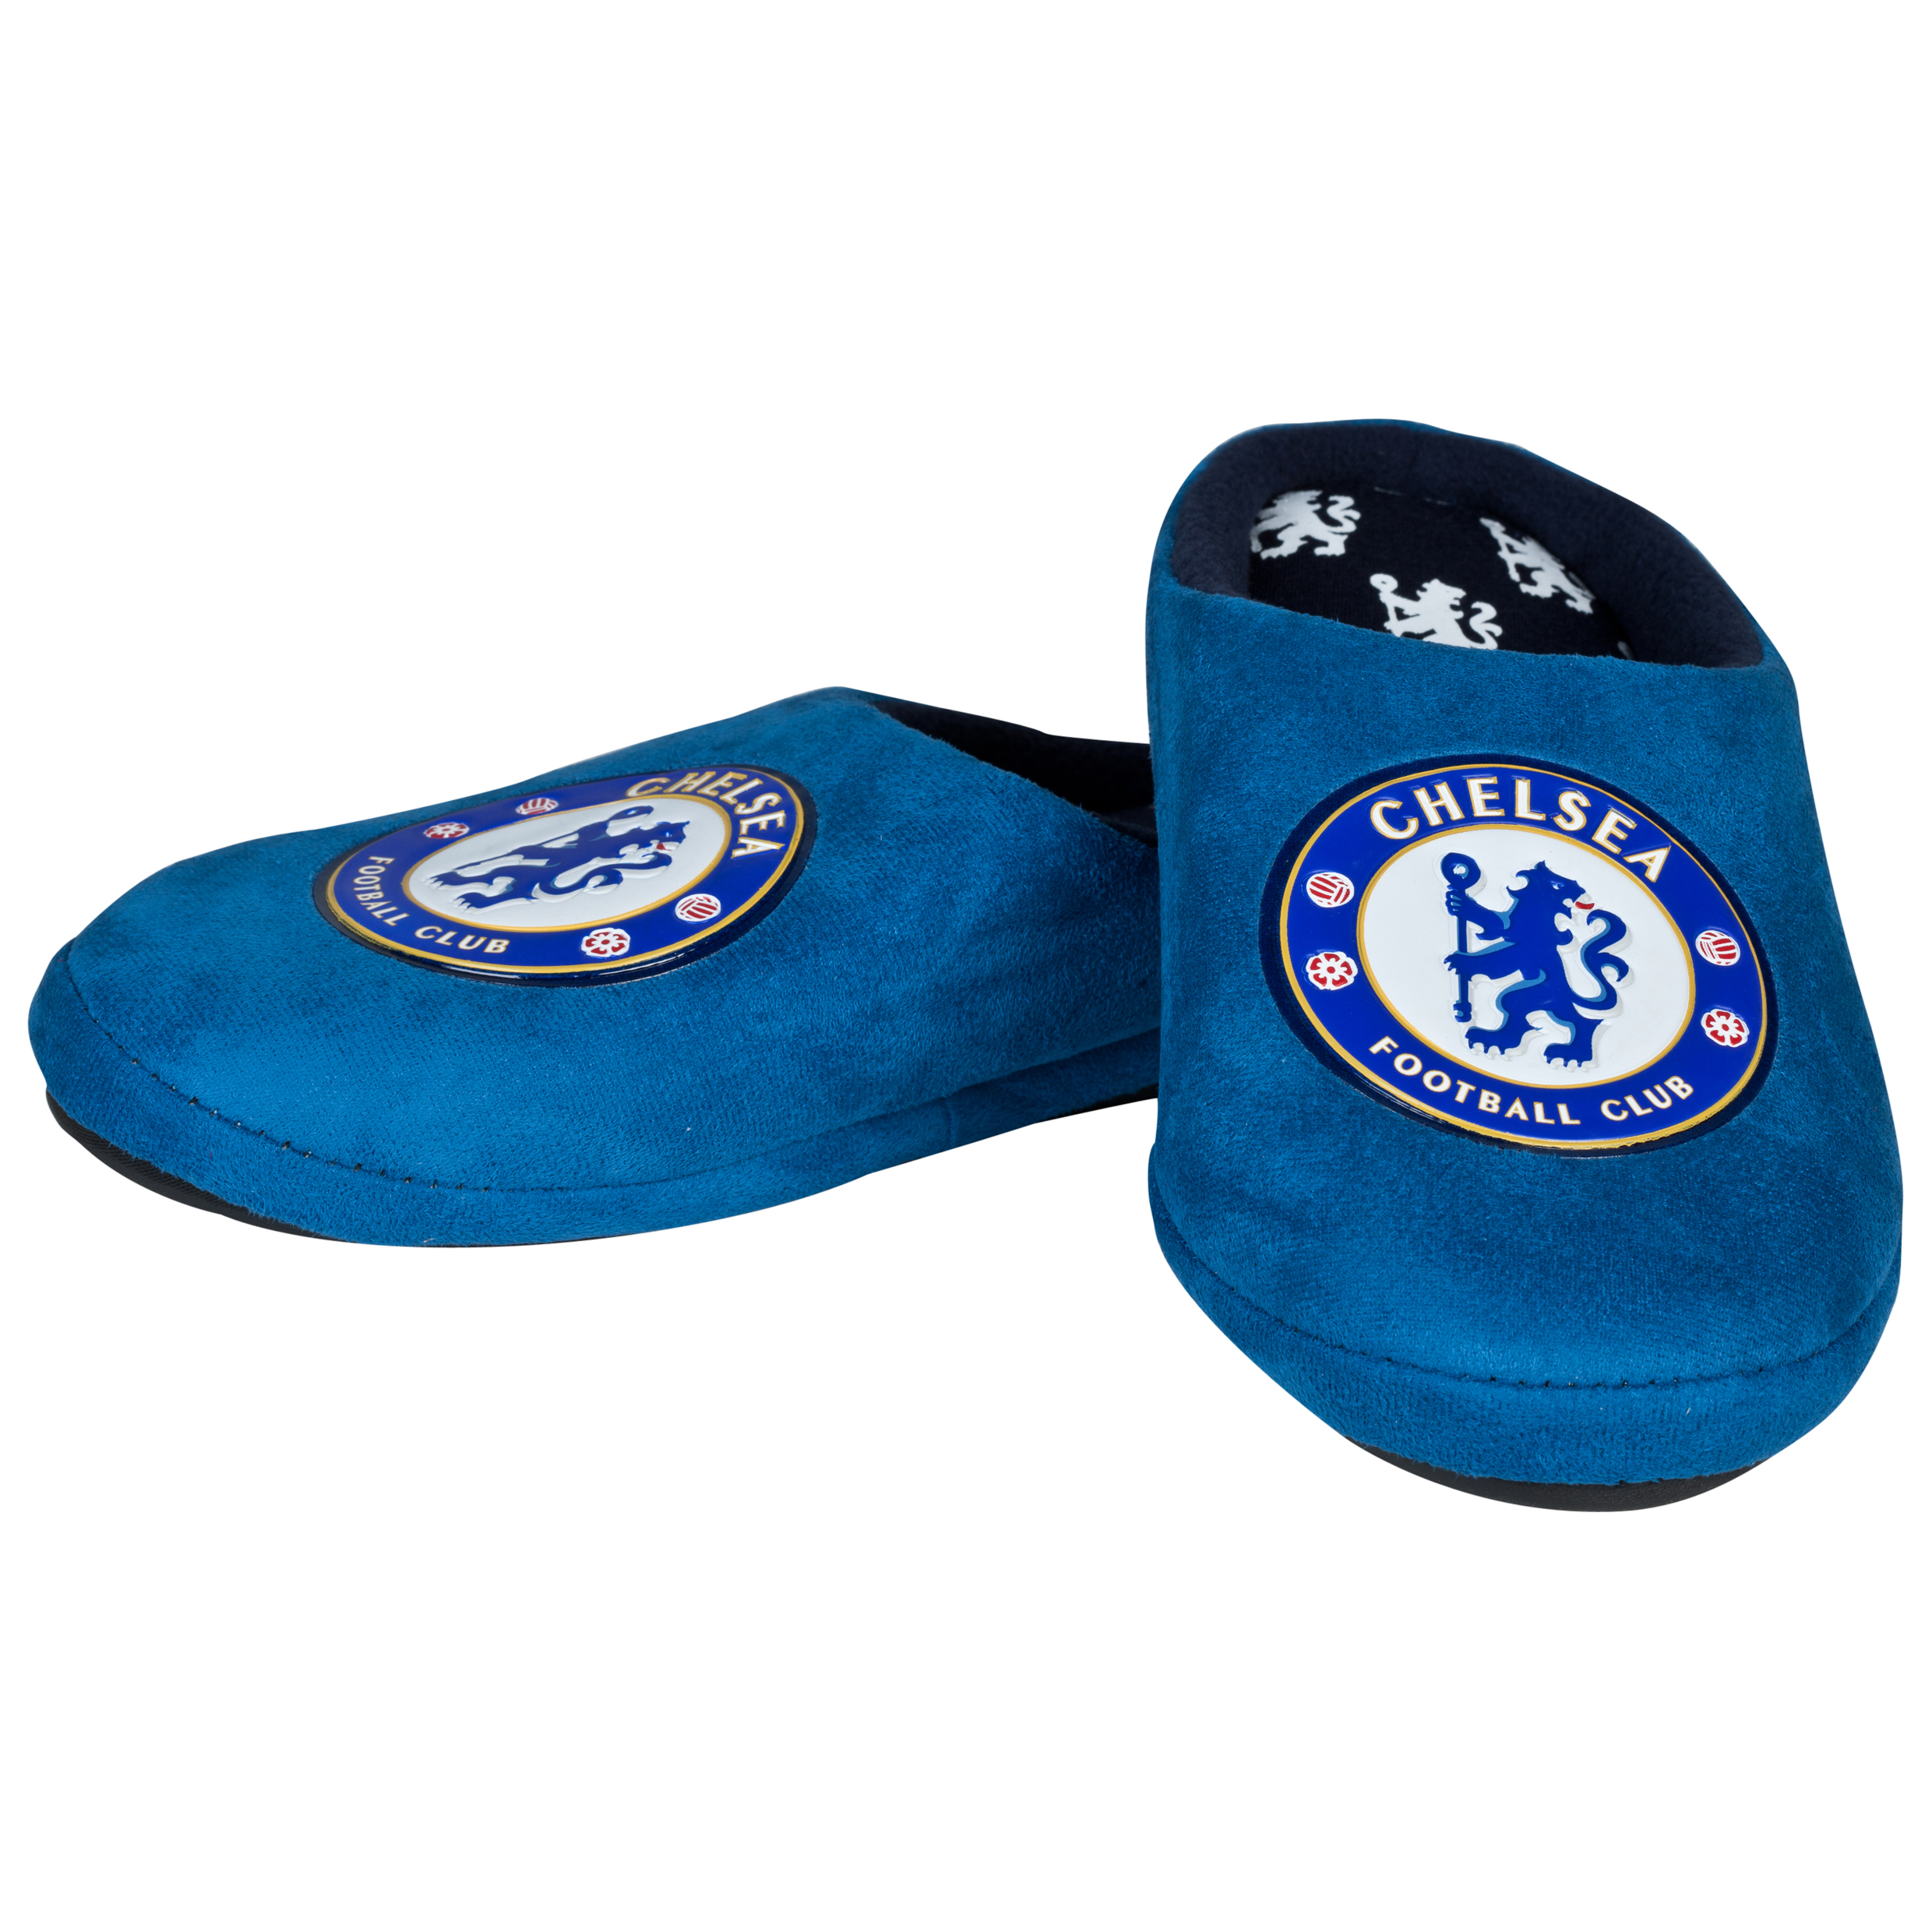 Chelsea Defender Slipper - Older Boys Royal Blue